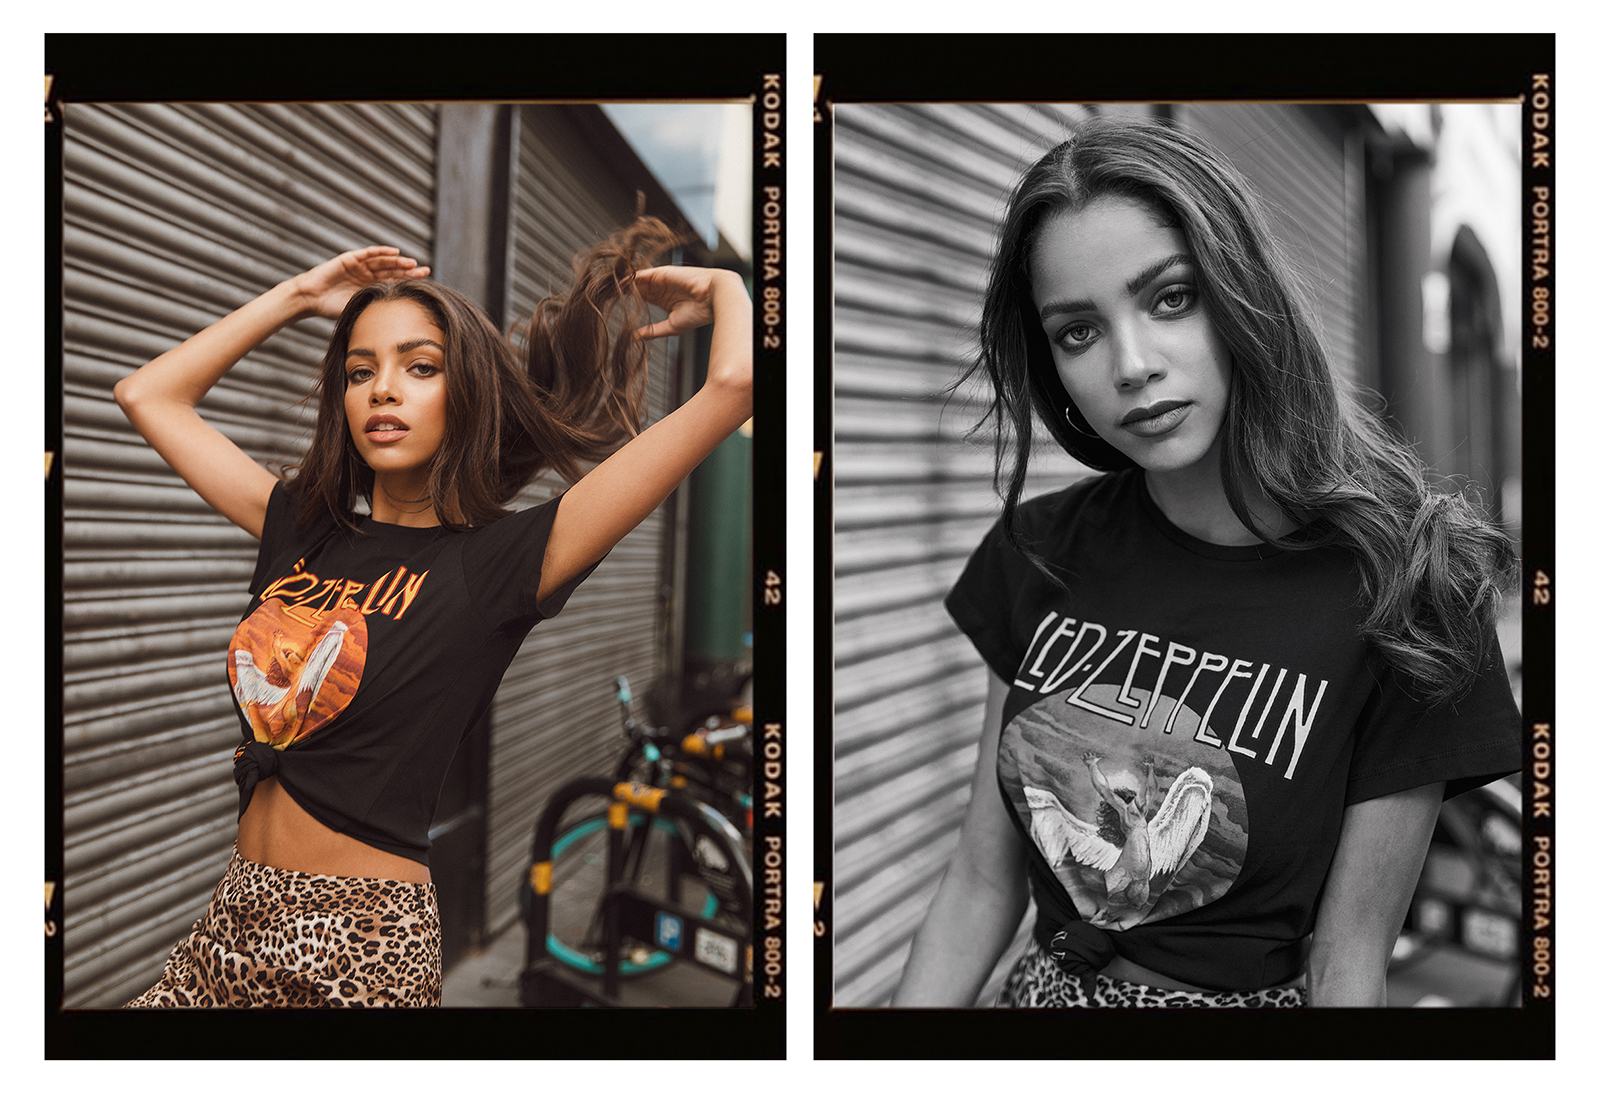 Melody @ The Squad portrait in Led Zeppelin shirt by London photographer Ailera Stone